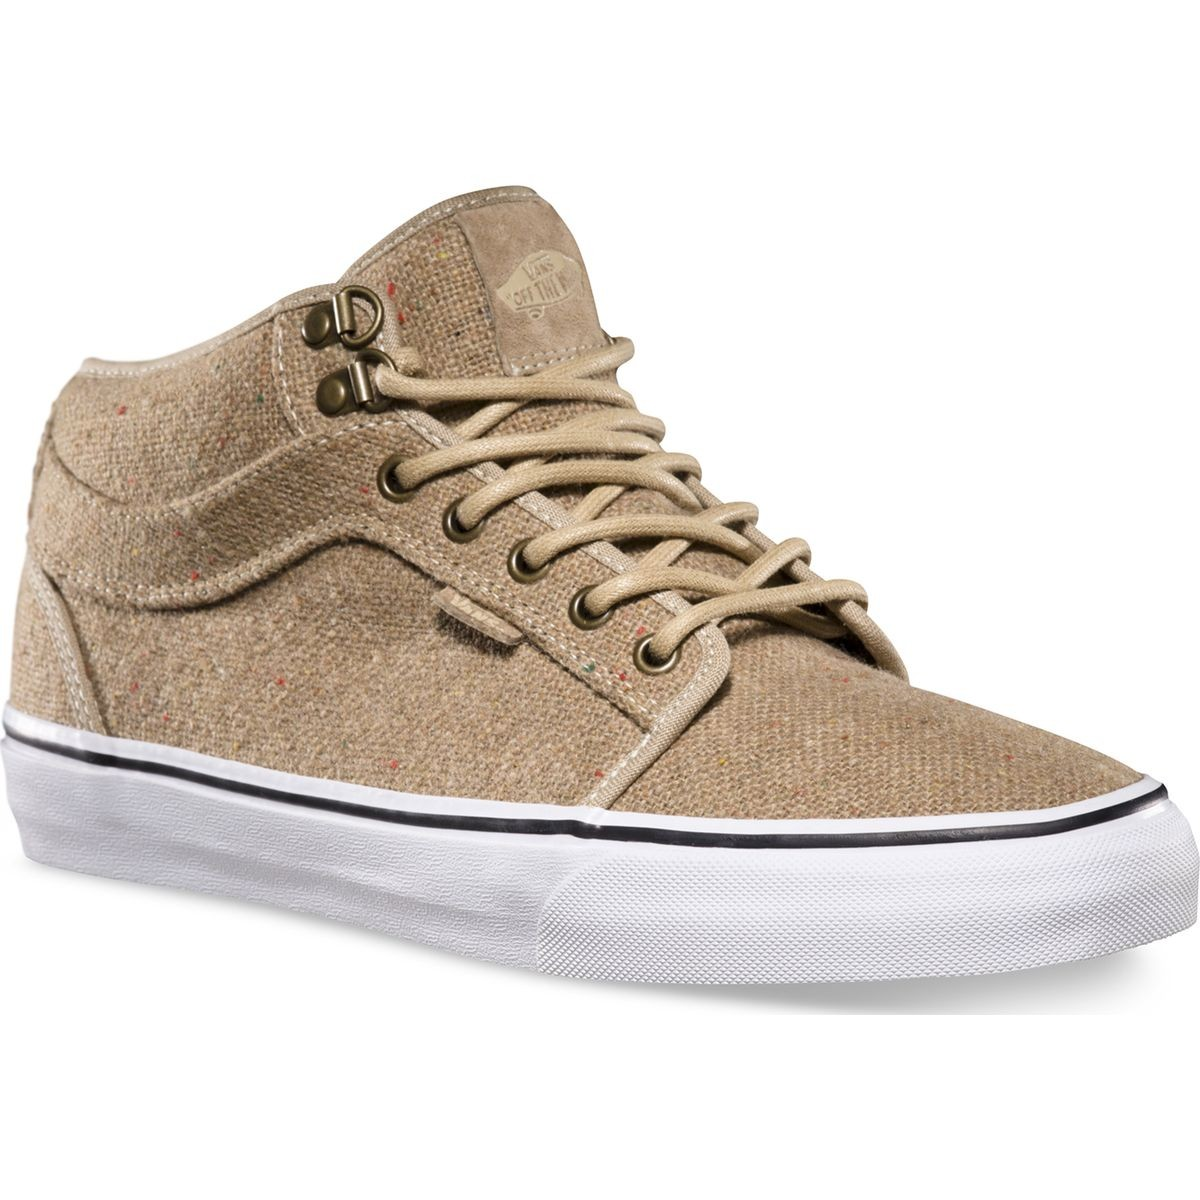 Vans Chukka Mid Shoes - Outdoor Tan